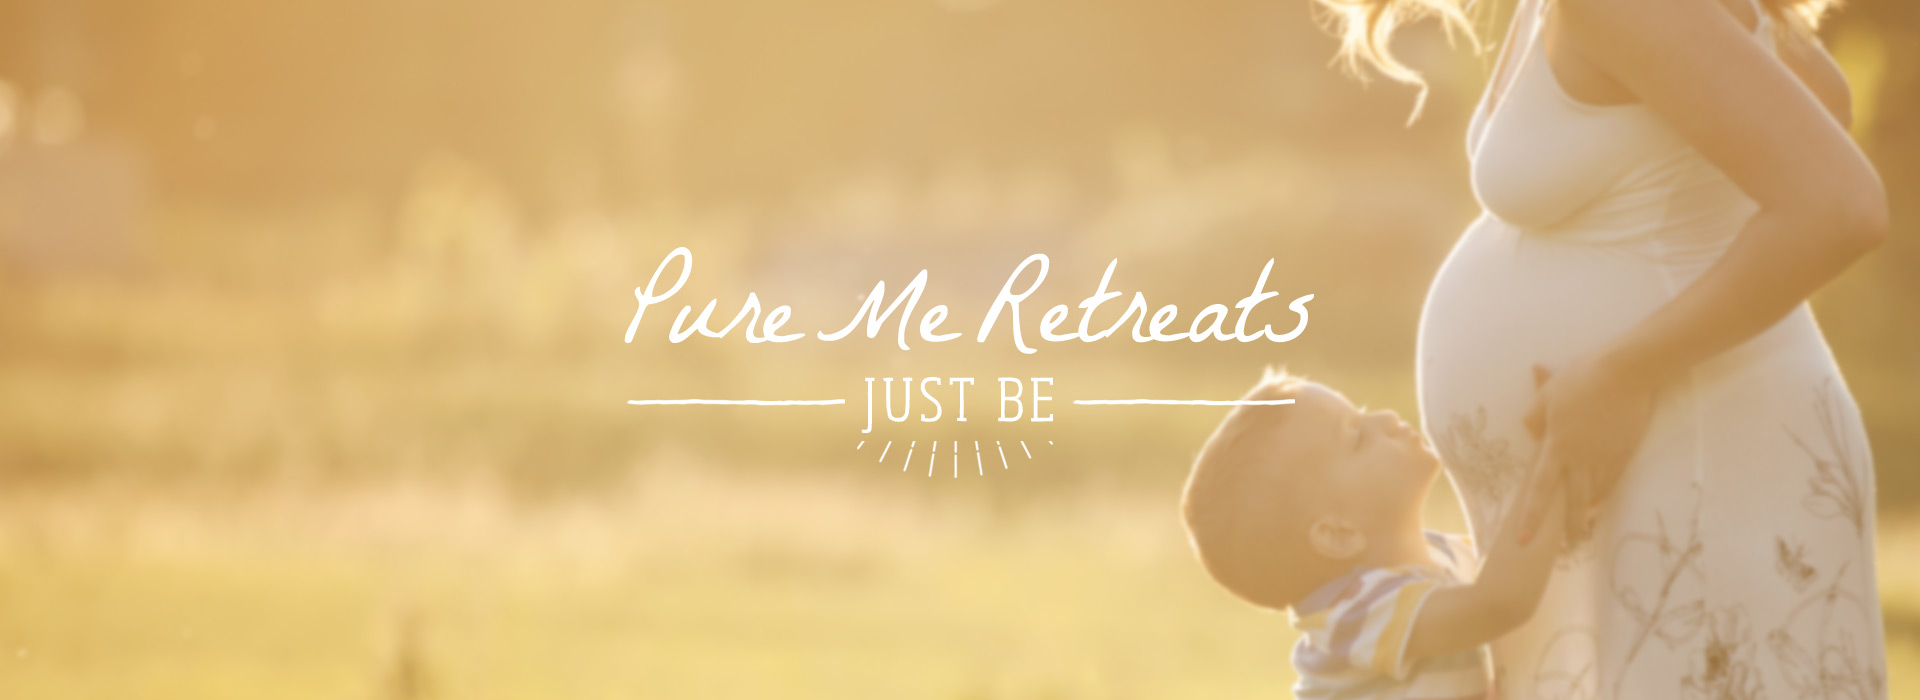 Pure-Me-Retreats-slider2